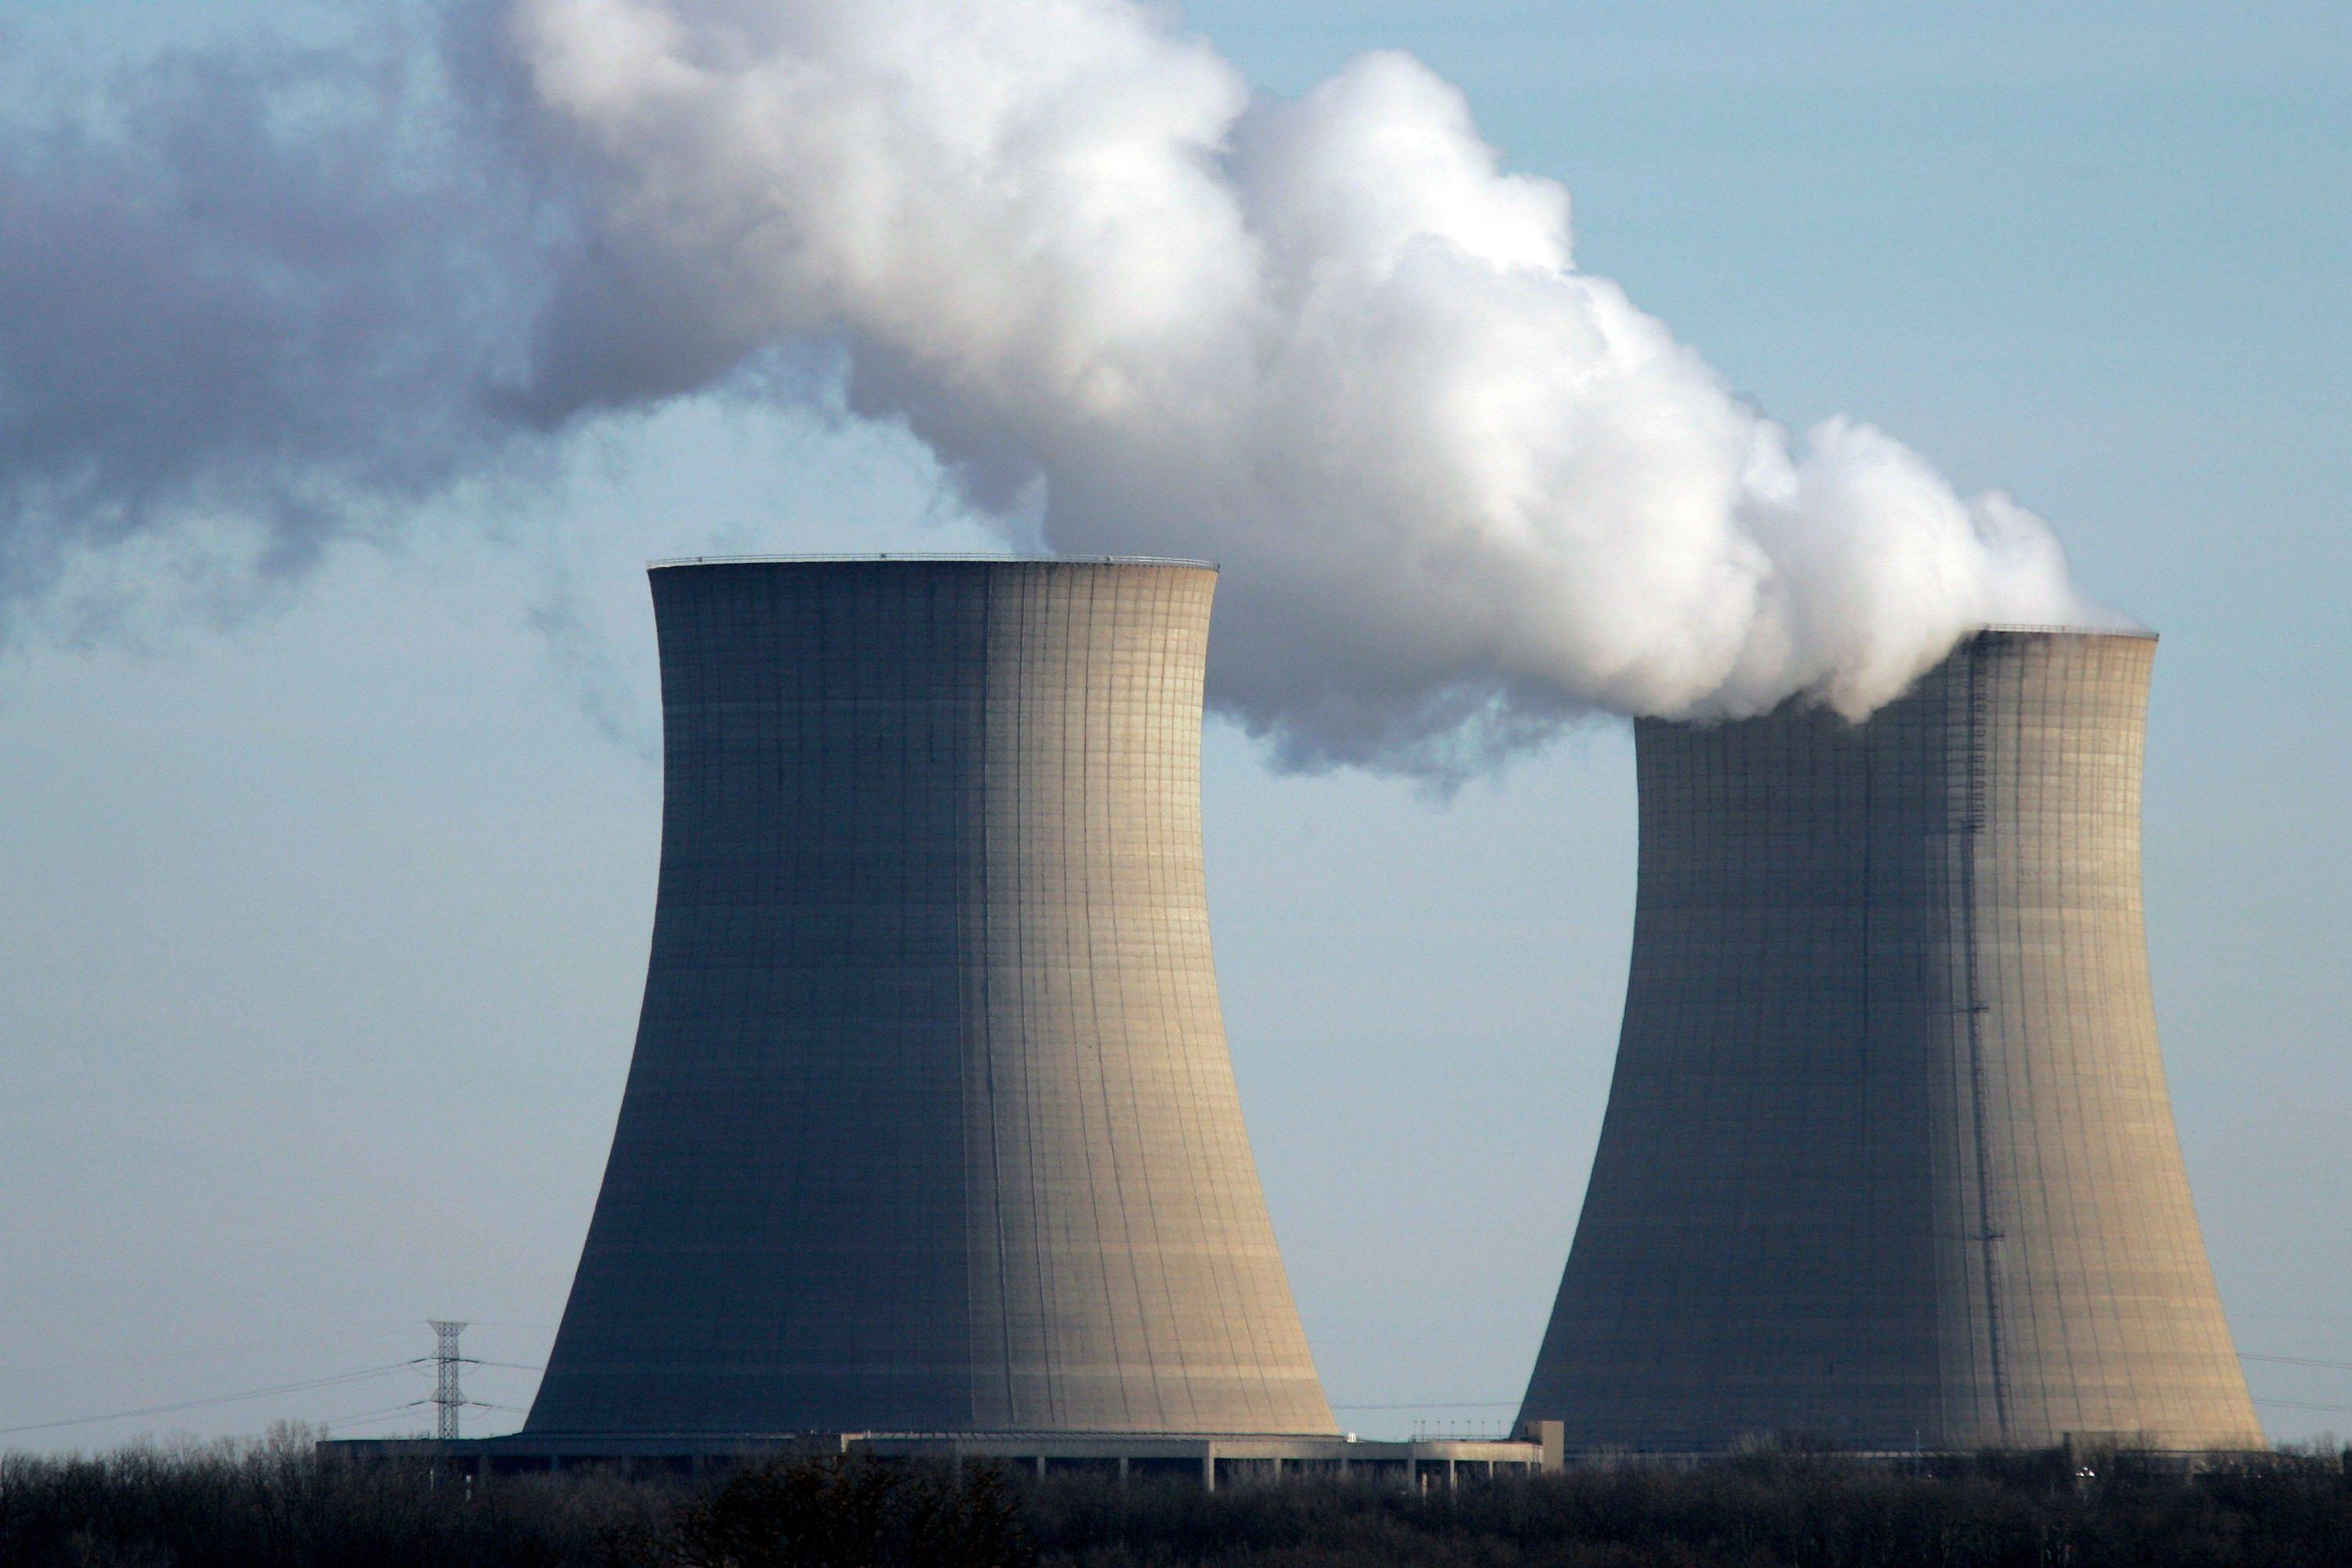 Steam rises from one of the two cooling towers Monday at the Byron nuclear generating station in Ogle County, Ill. A loss of power coming into the plant caused one of the reactors to automatically shutdown Monday morning.